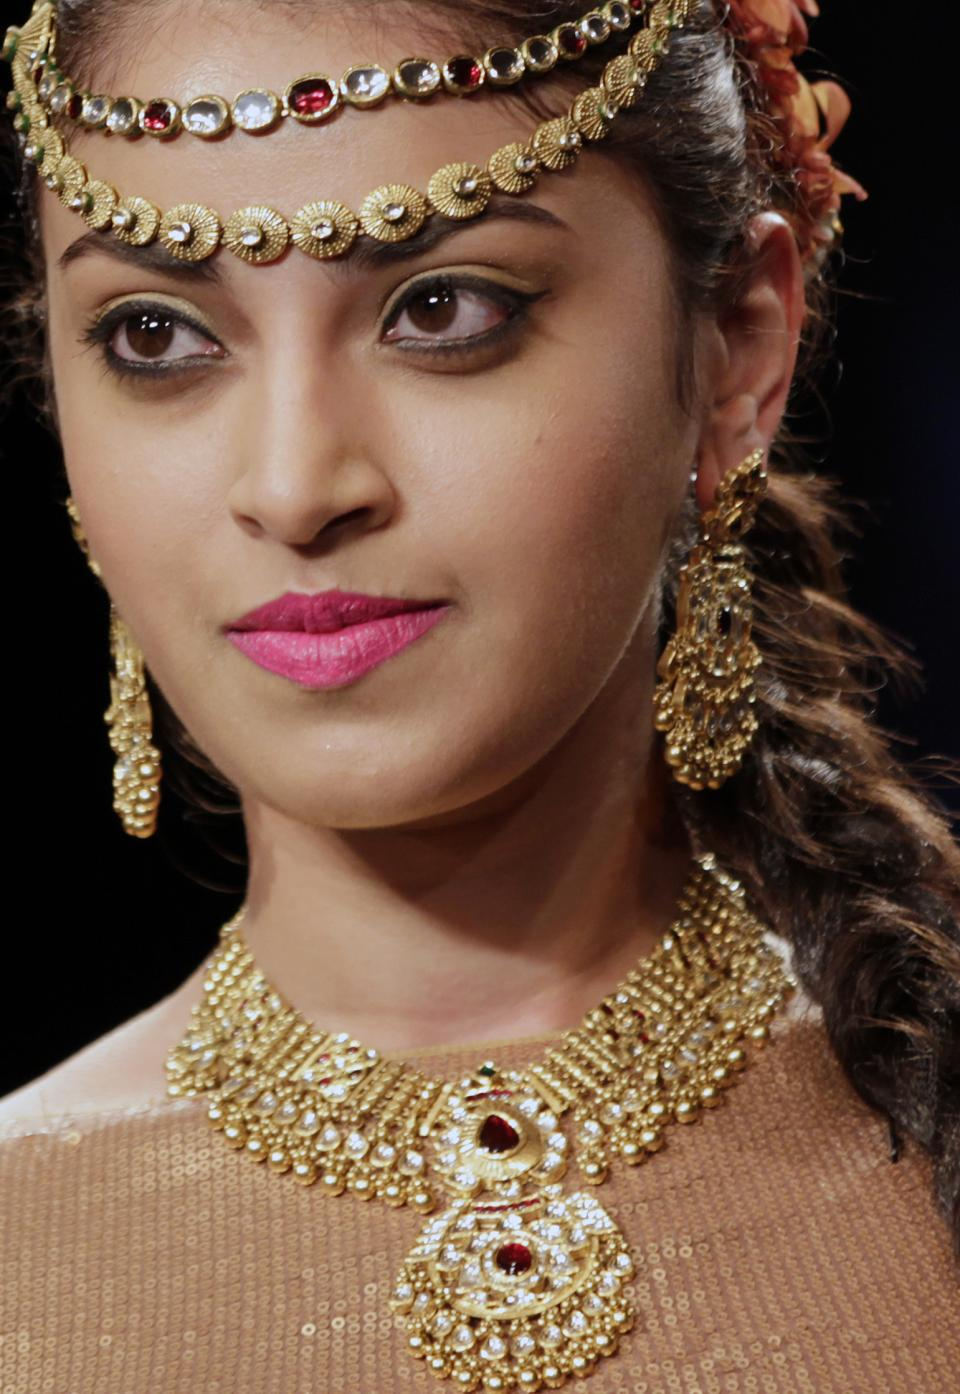 An Indian model displays a creation by Neeta Lulla during the Lakme Fashion Week in Mumbai, India, Tuesday, Aug. 7, 2012. (AP Photo/Rajanish Kakade)